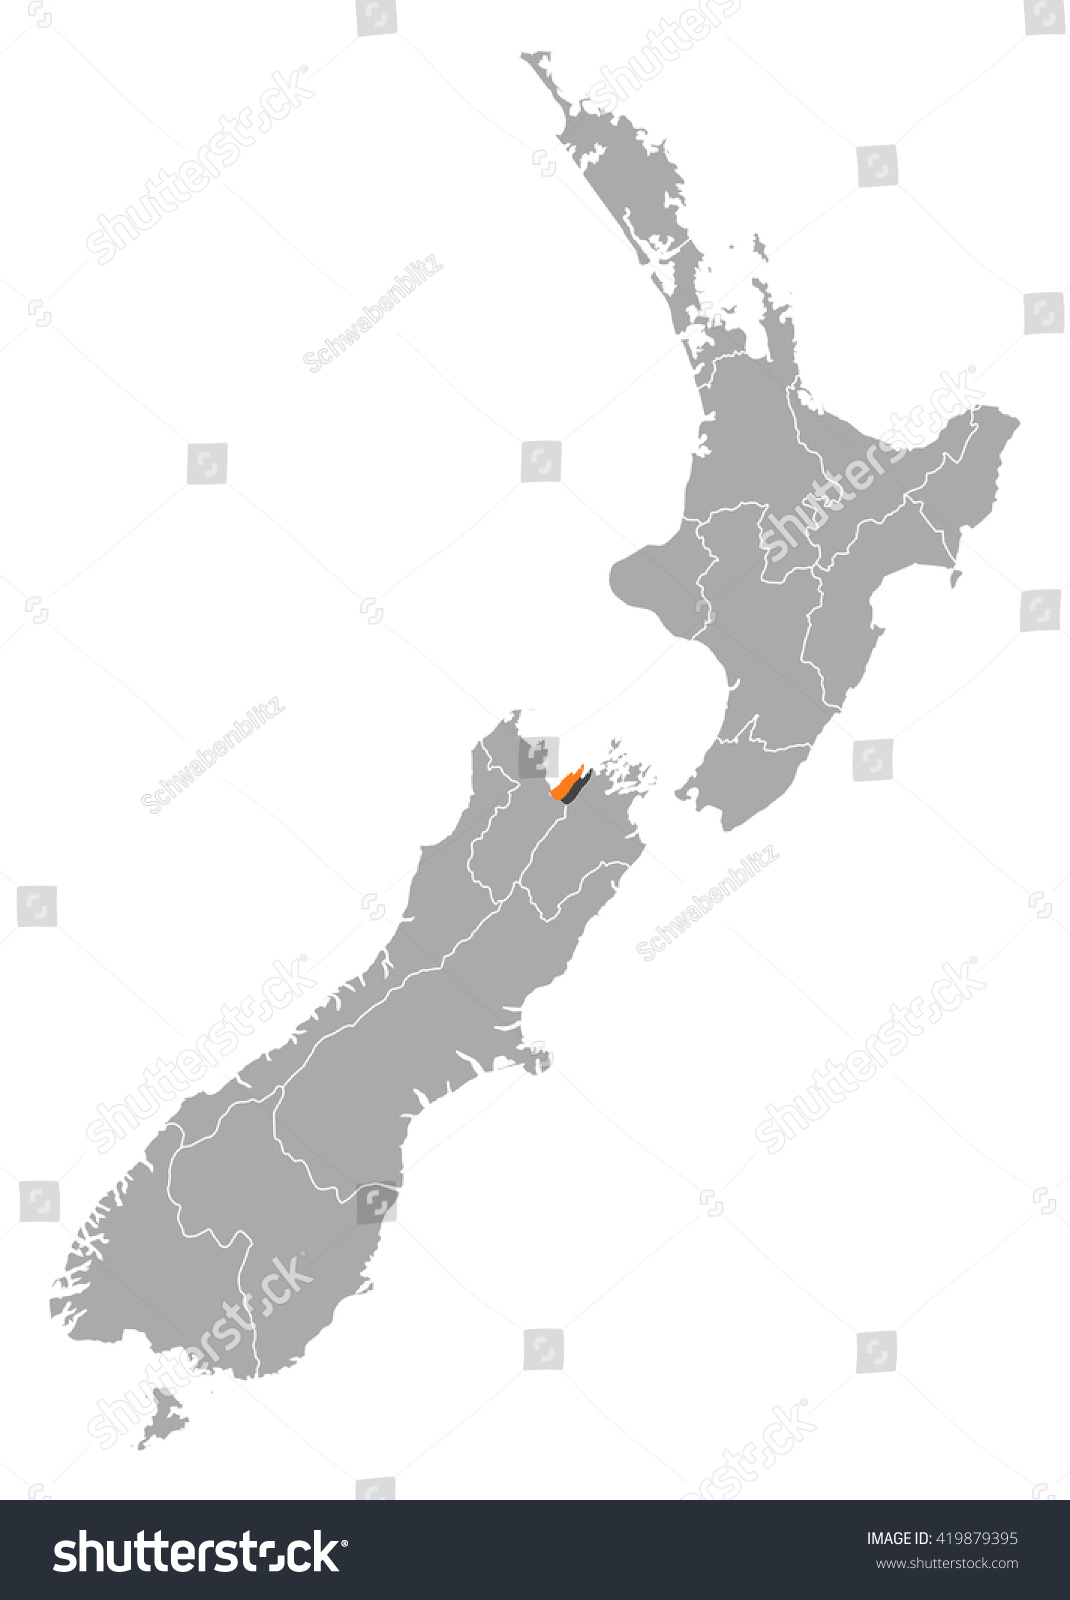 Map Nelson New Zealand.Map New Zealand Nelson Stock Vector Royalty Free 419879395